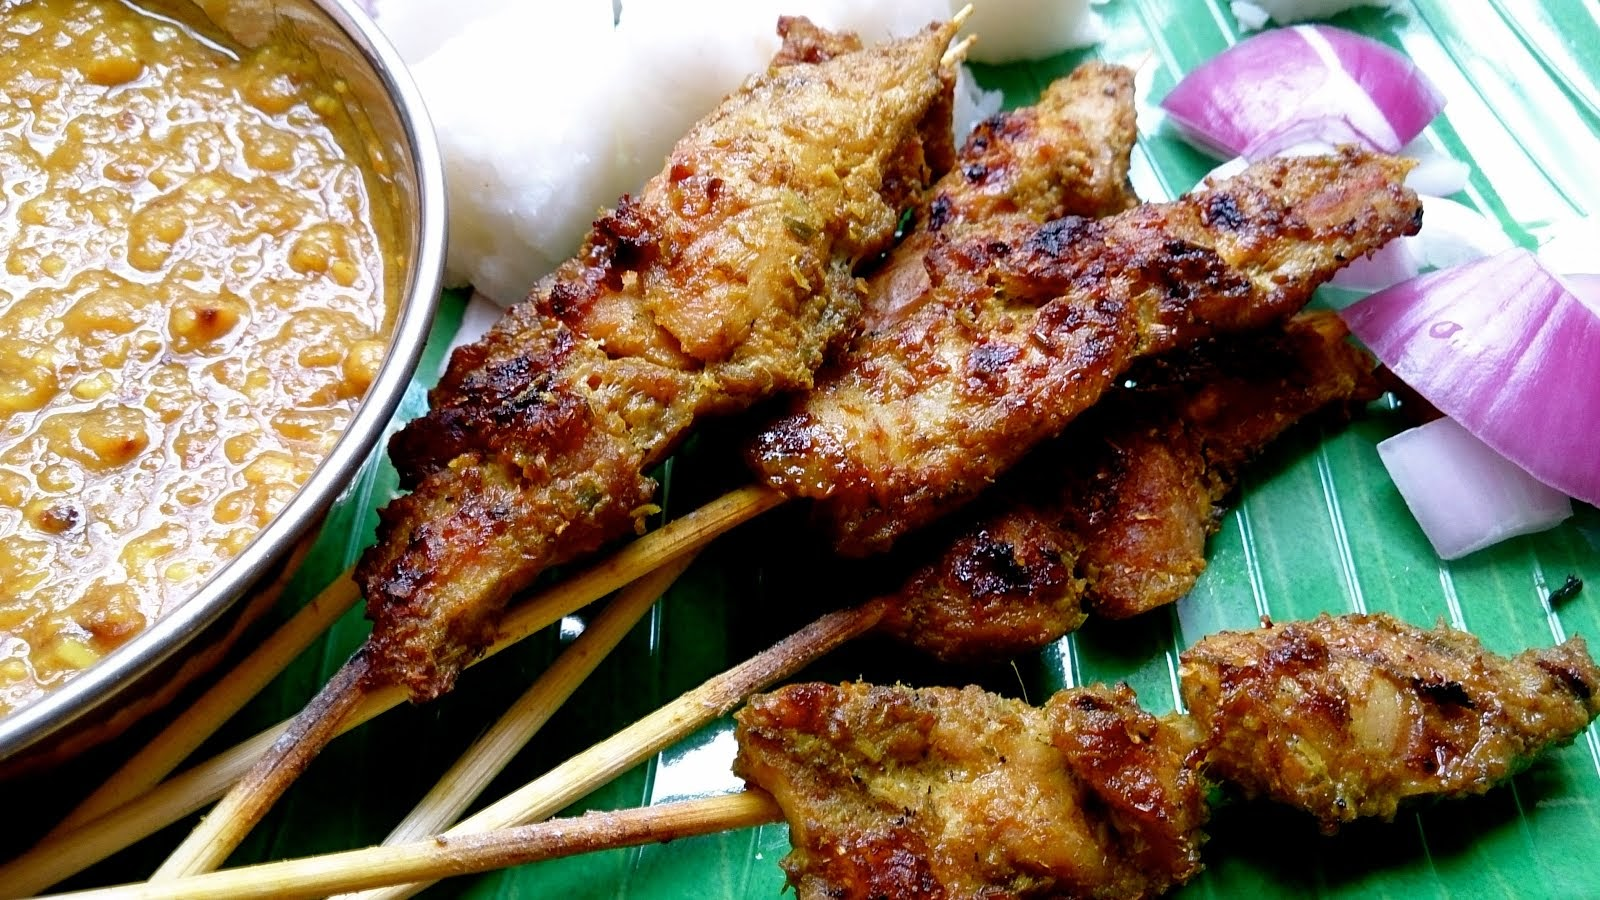 Grill-Your-Own-Satay Packs